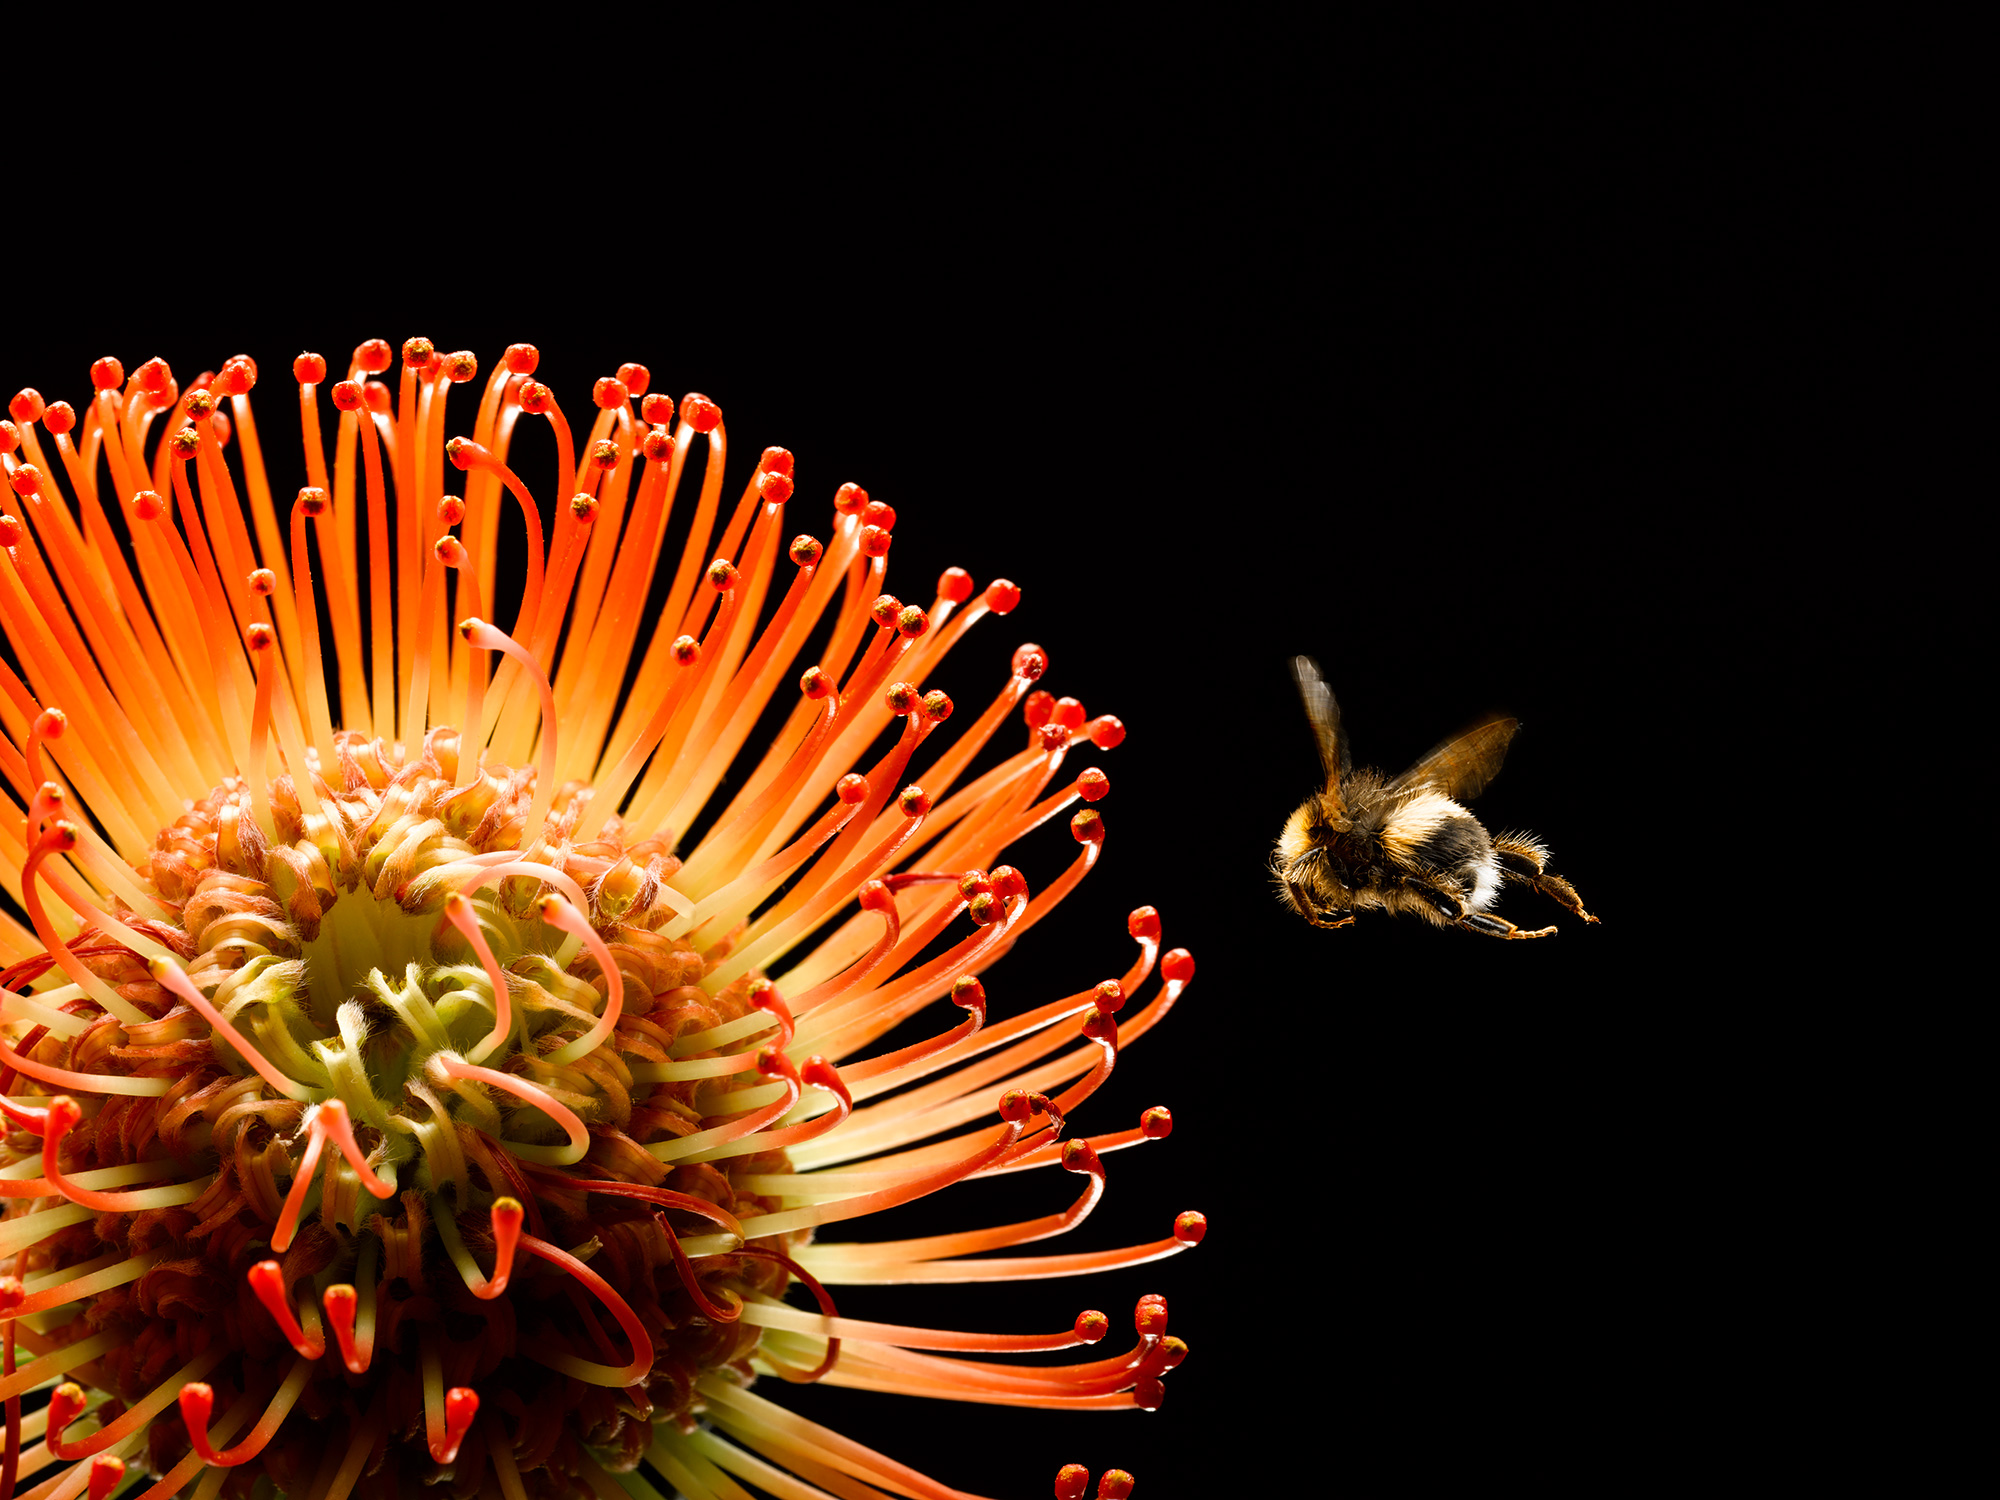 Bee-Flying-to-Orange-Pin-Cushion-Protea_forweb.jpg